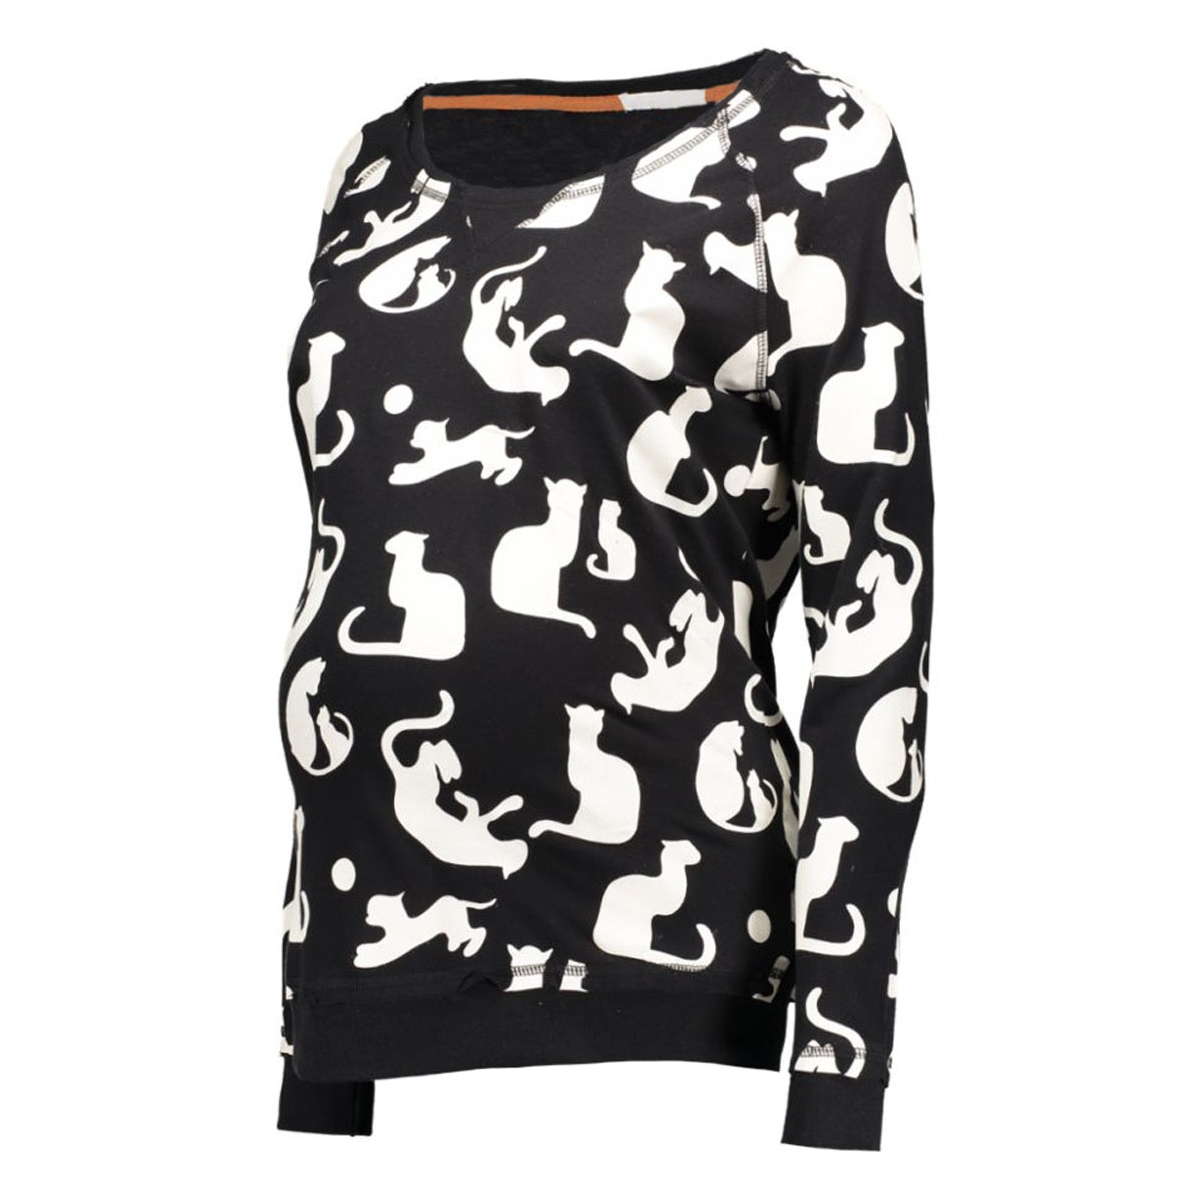 s0343 sweater cat supermom positie trui c010 off white